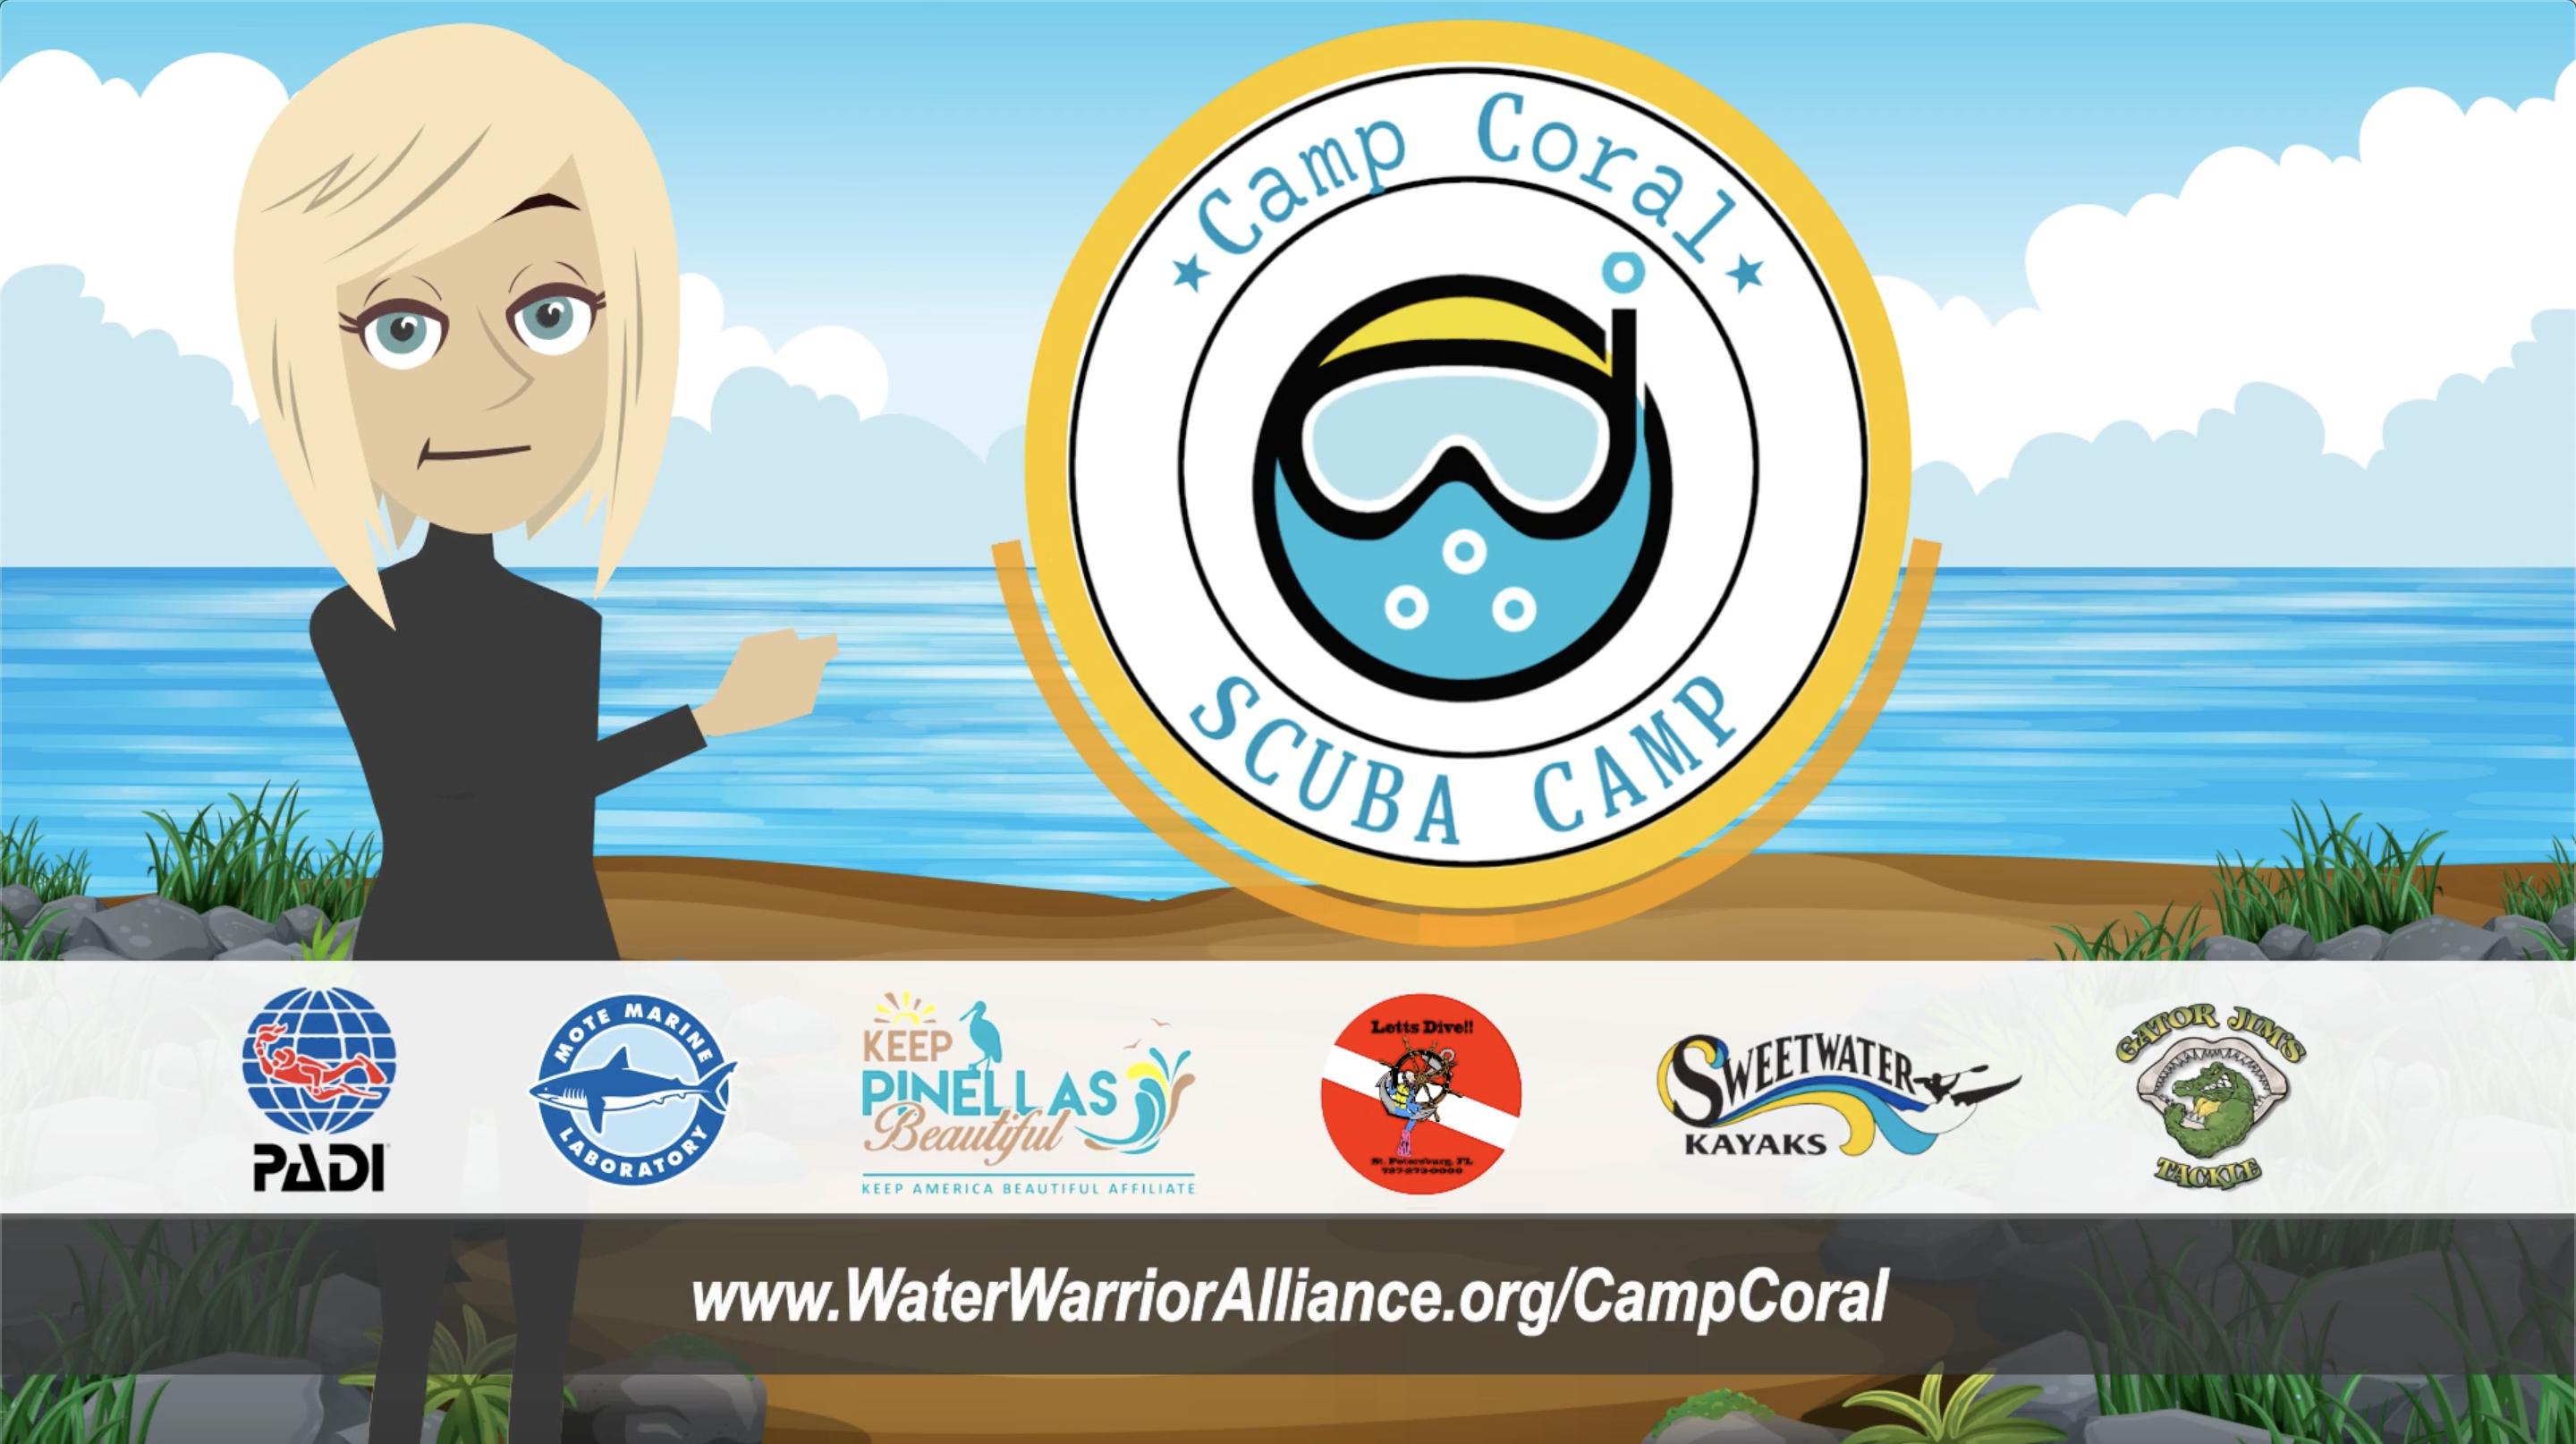 Water Warrior Alliance announces the Camp Coral, a two-week overnight camping experience for marine activity enthusiasts.